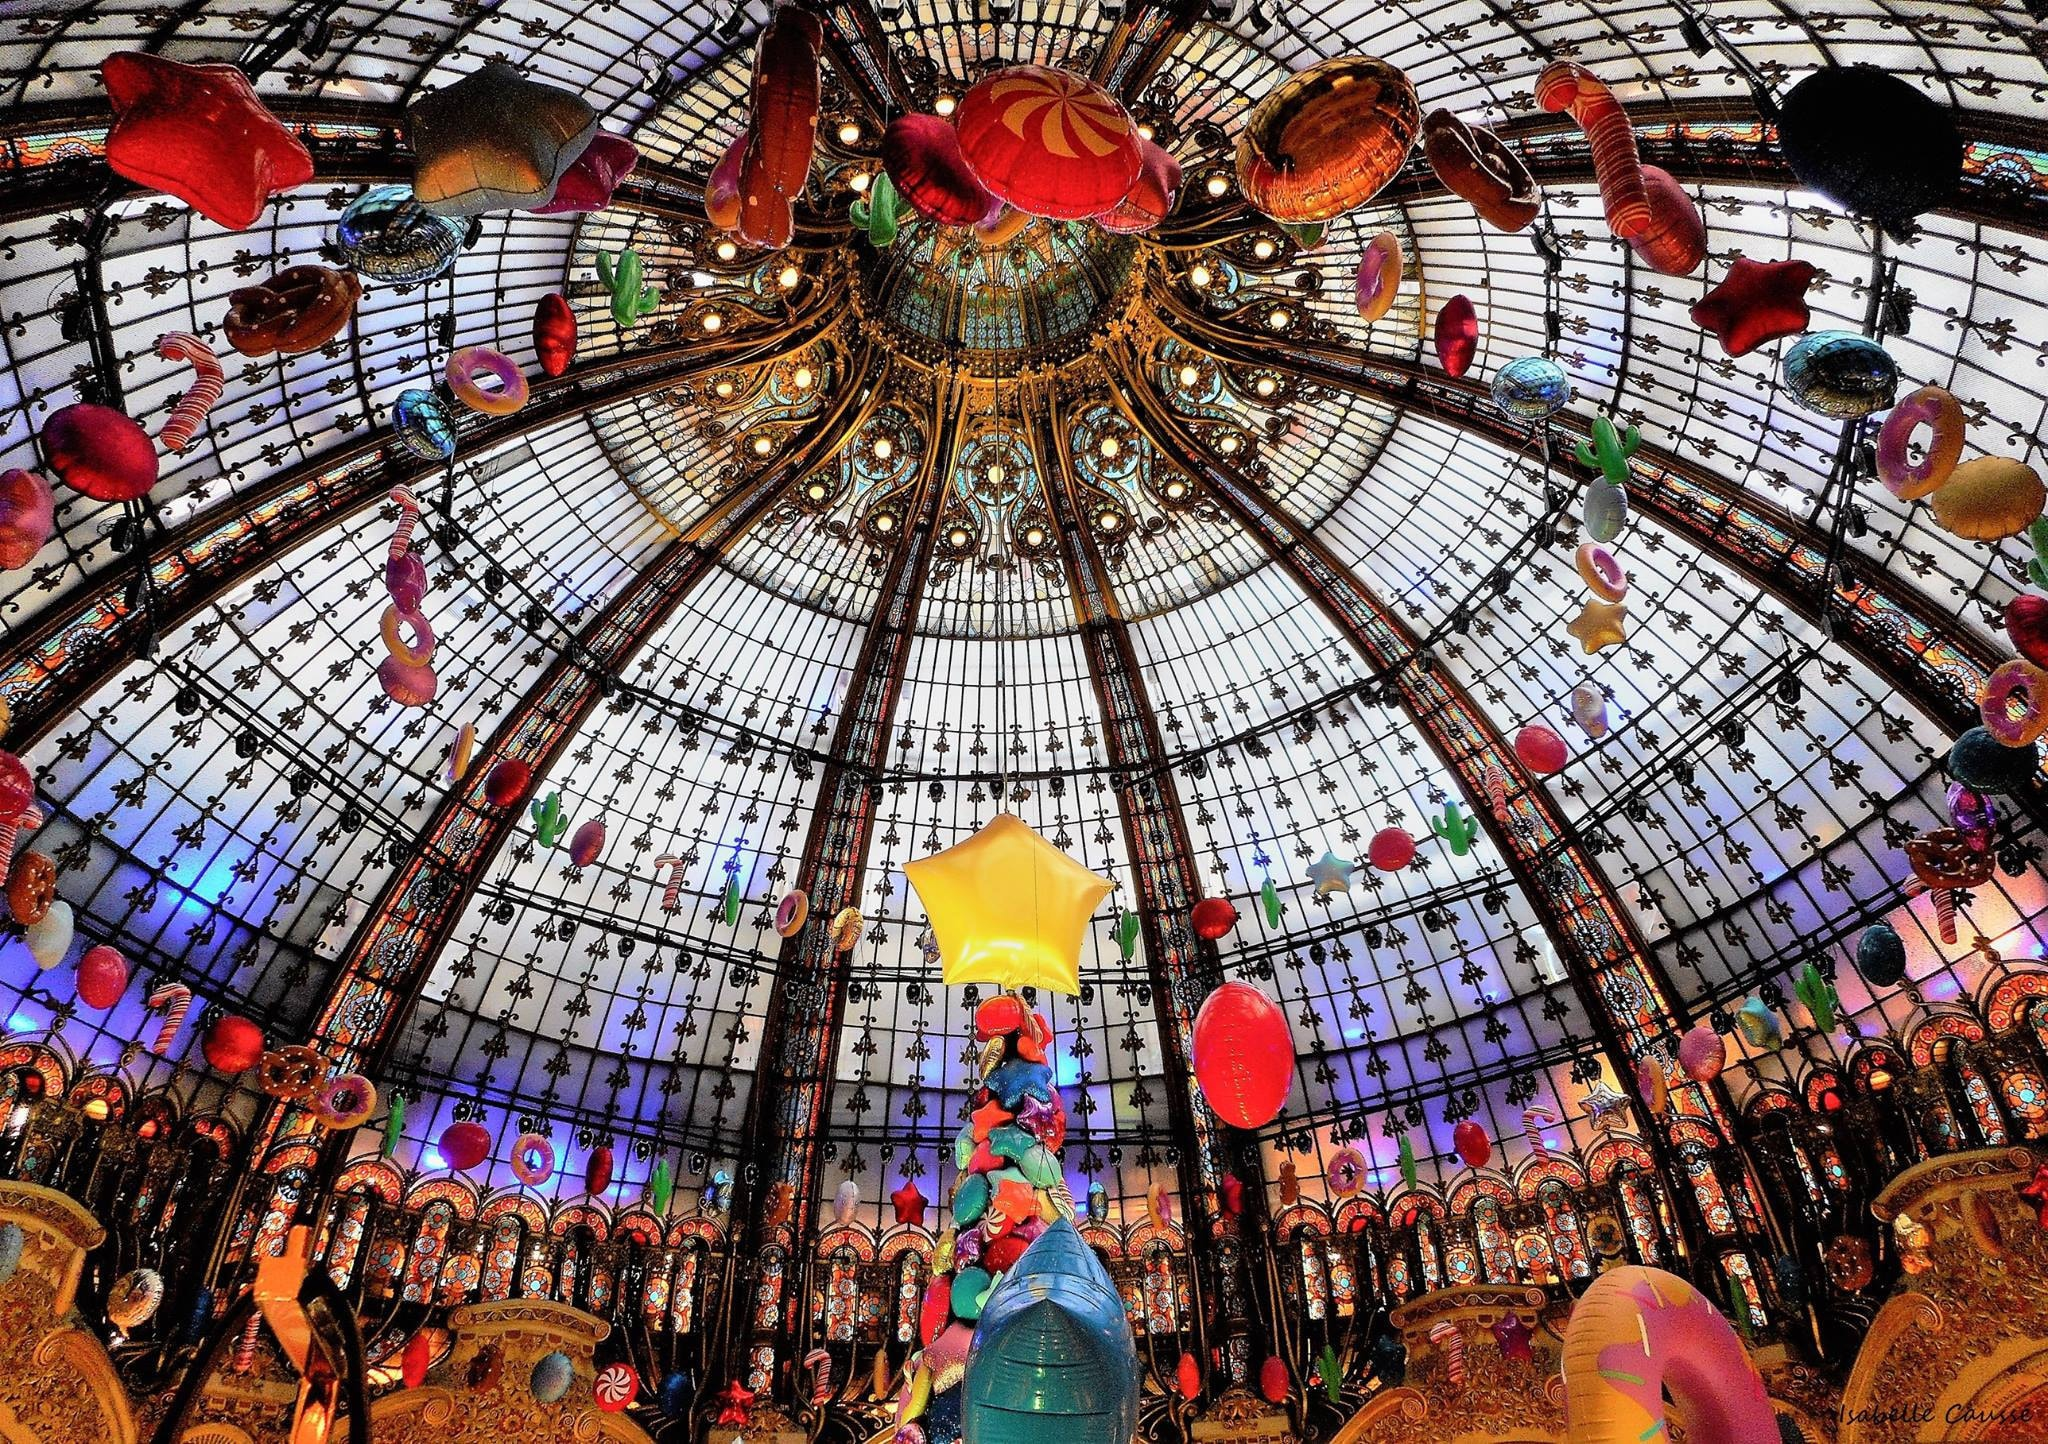 Coupole des Galeries Lafayette, Paris. Photo I.Caussé